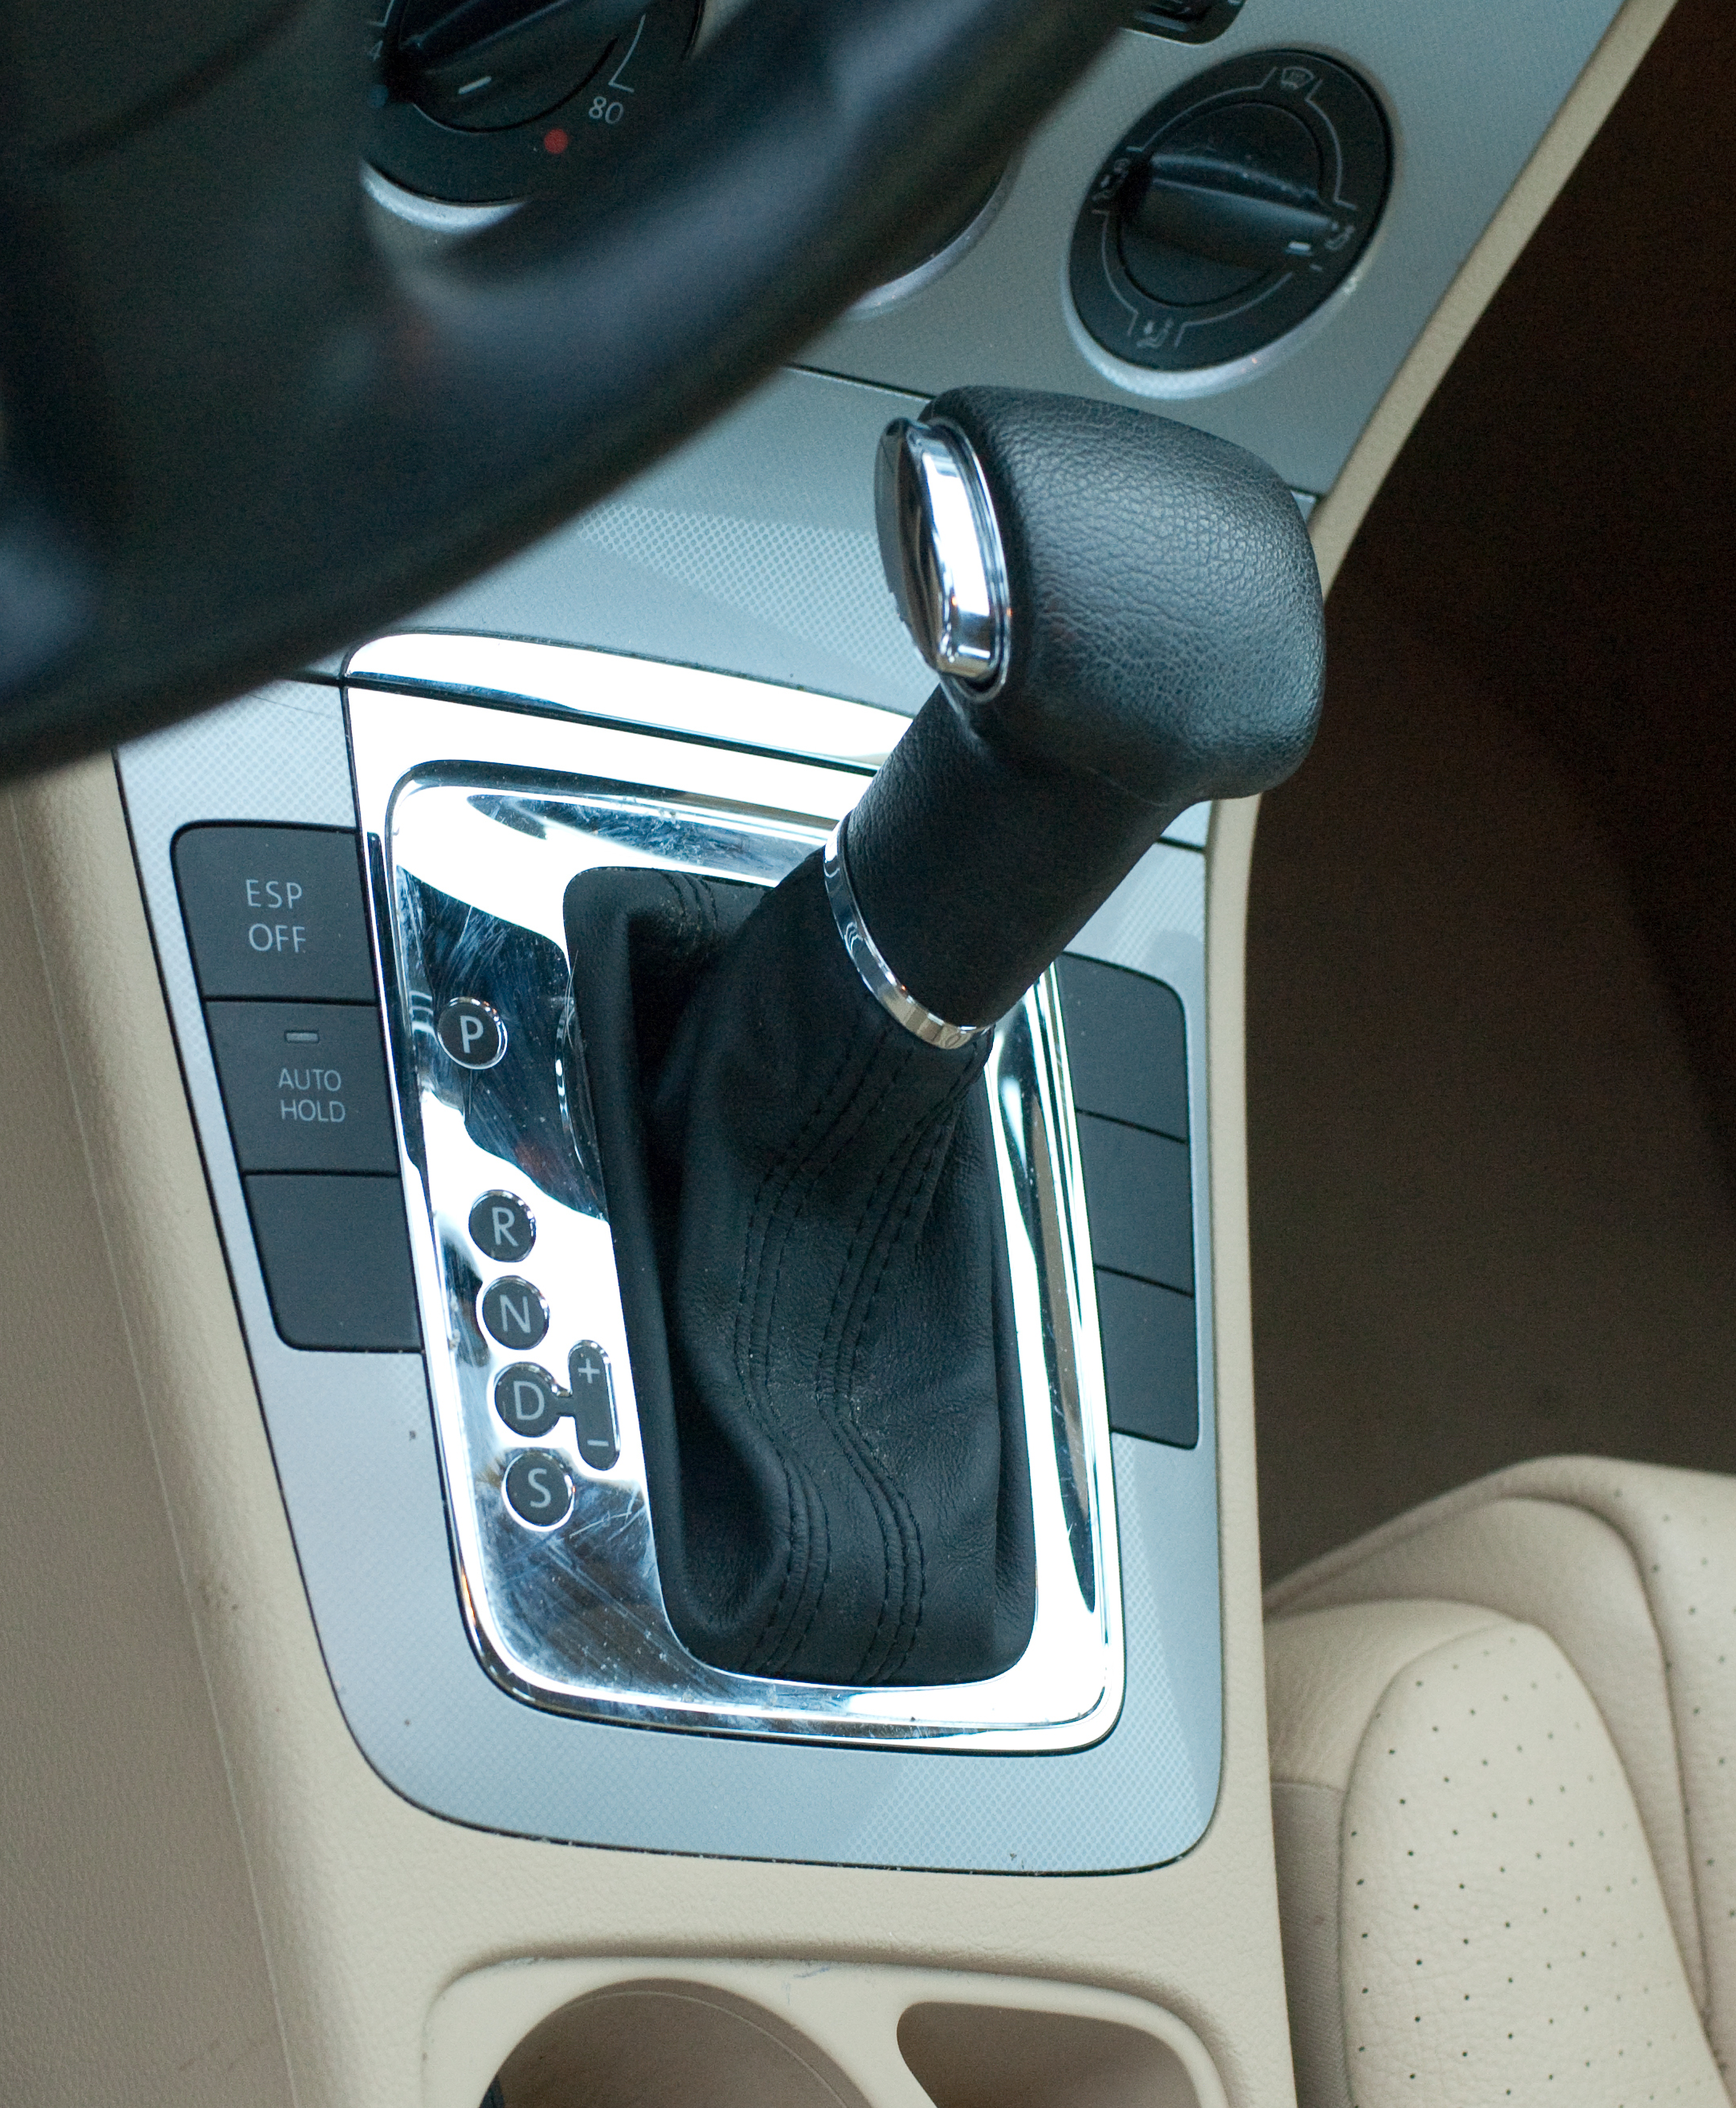 2010 Volkswagen Passat Transmission: Finding A Replacement Vehicle For Our 2007